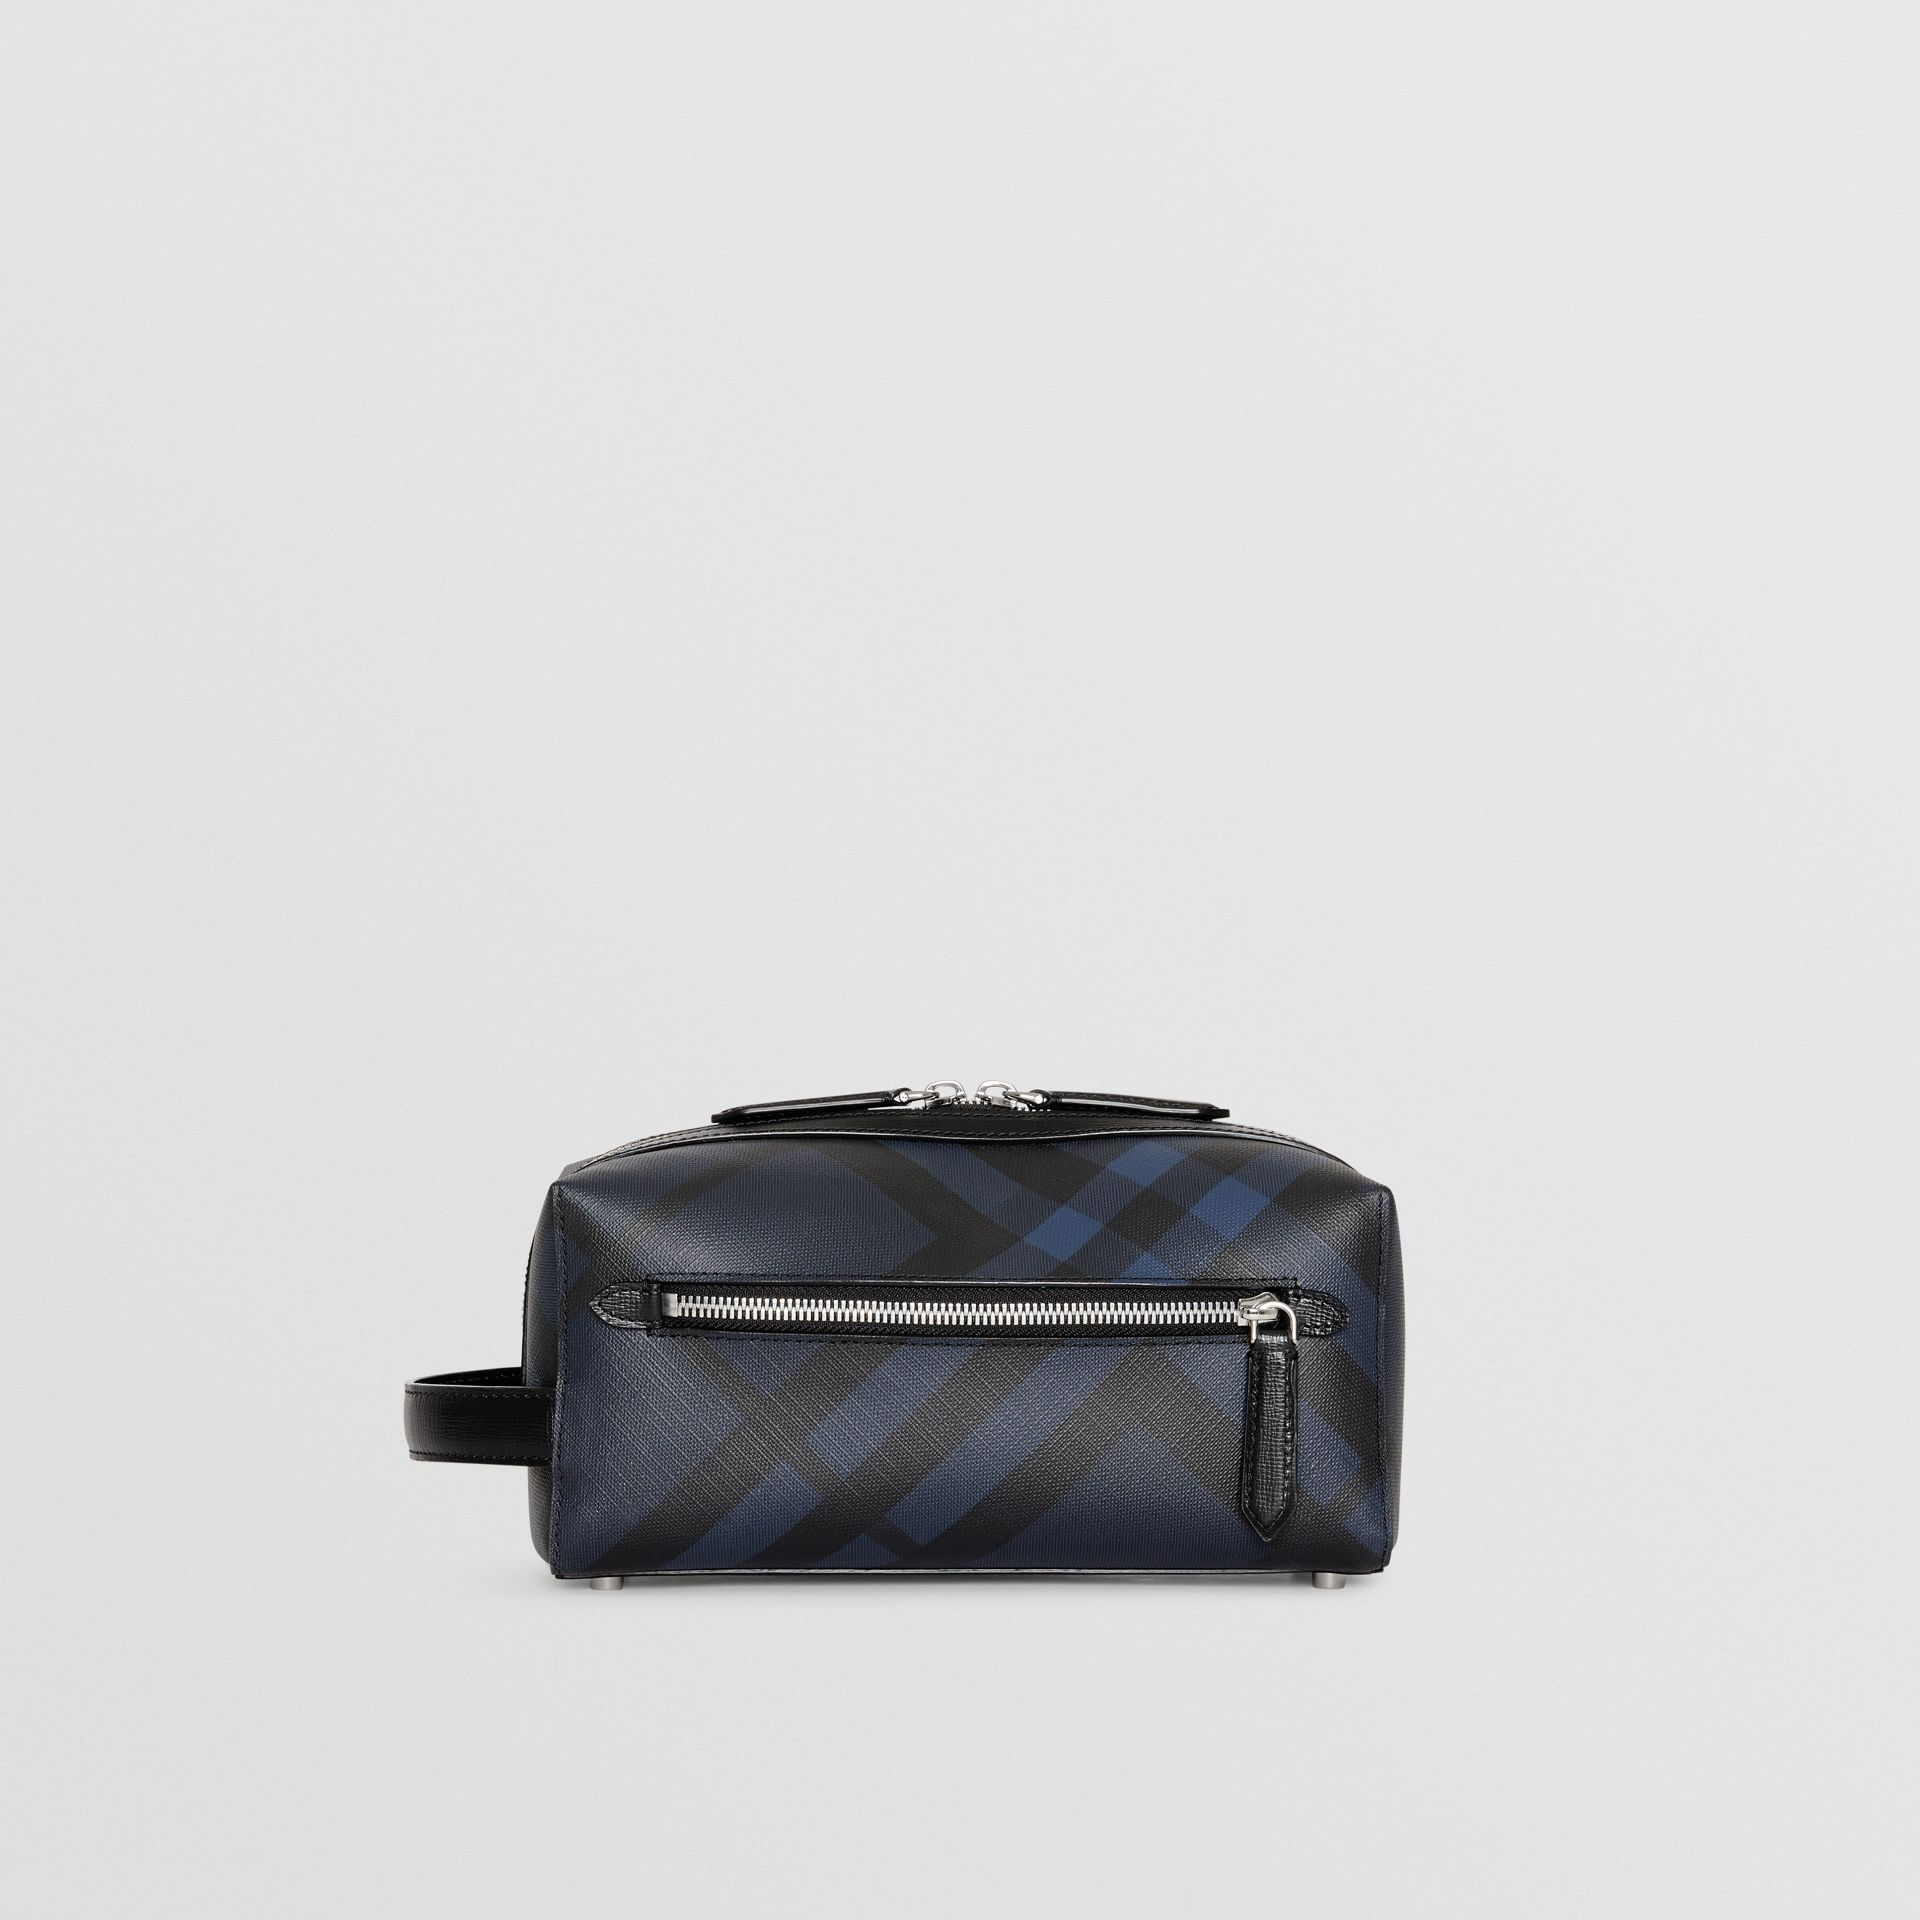 Trousse con pelle e motivo London check (Navy/nero) | Burberry - immagine della galleria 7